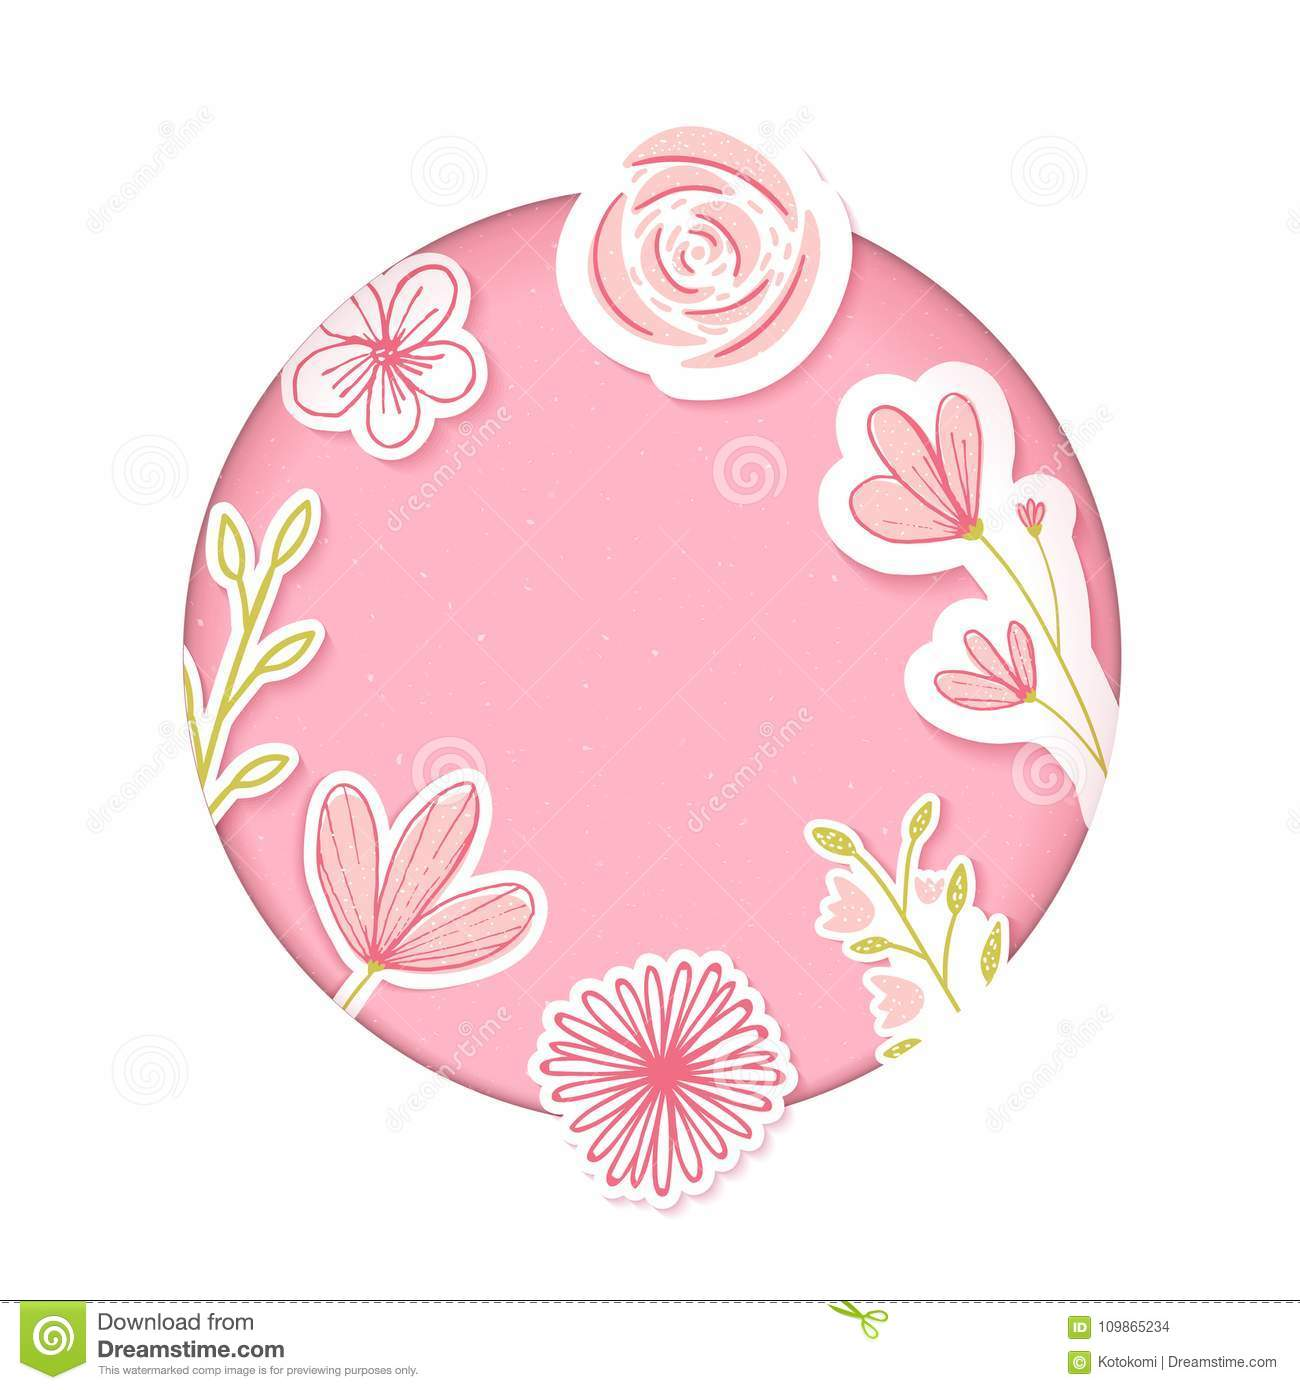 Circle frame. Pink paper clip art with hand drawn flowers. Blank template for feminine products, cosmetics, sales.